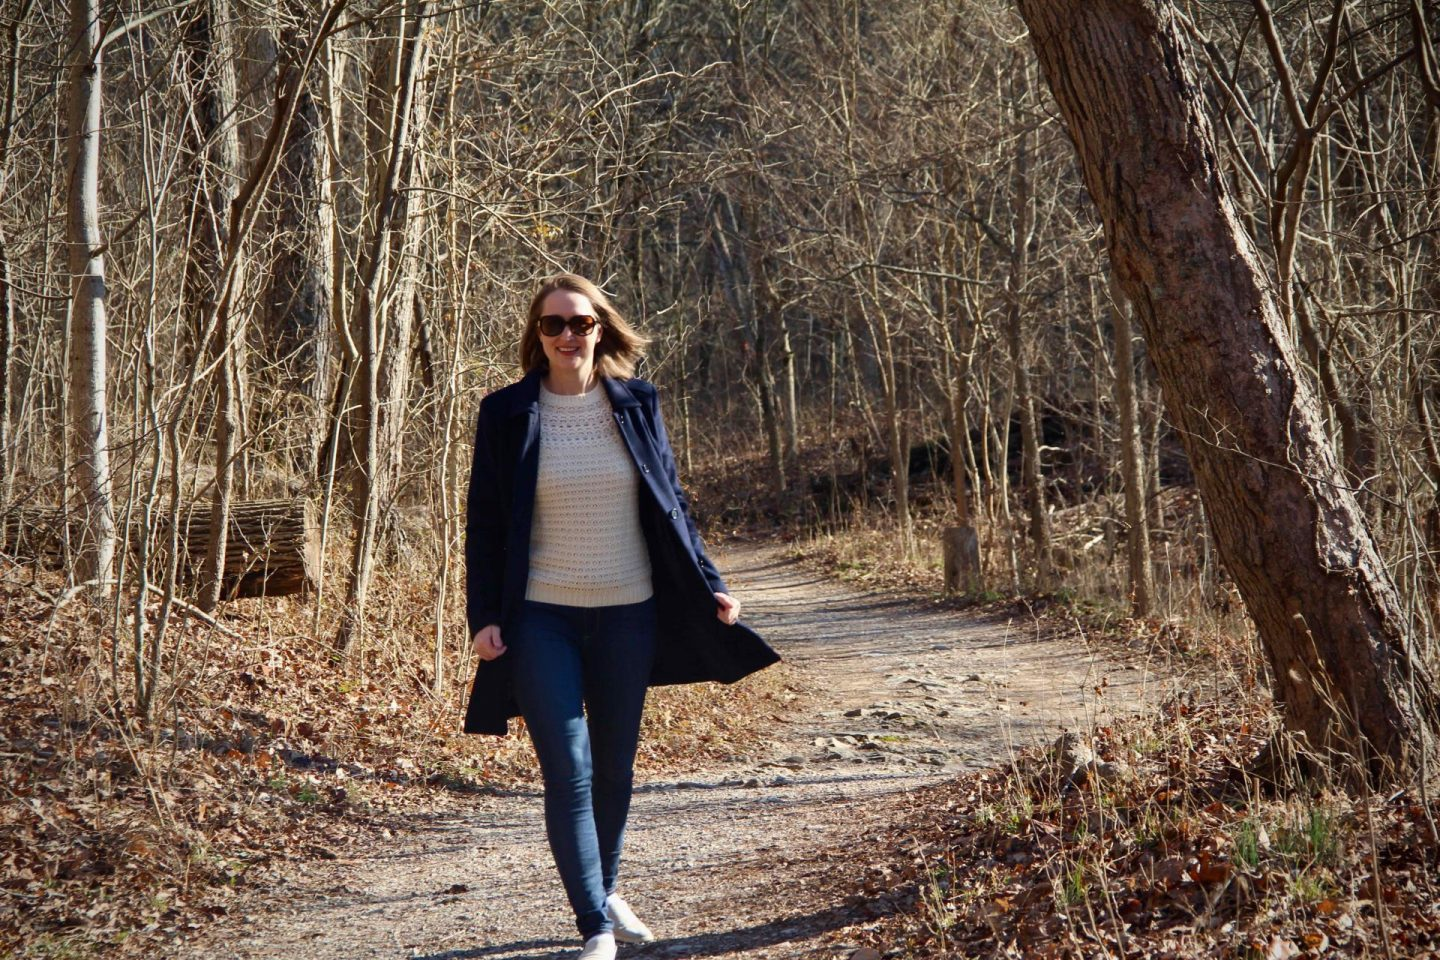 Walks through Sharon Woods in Cincinnati